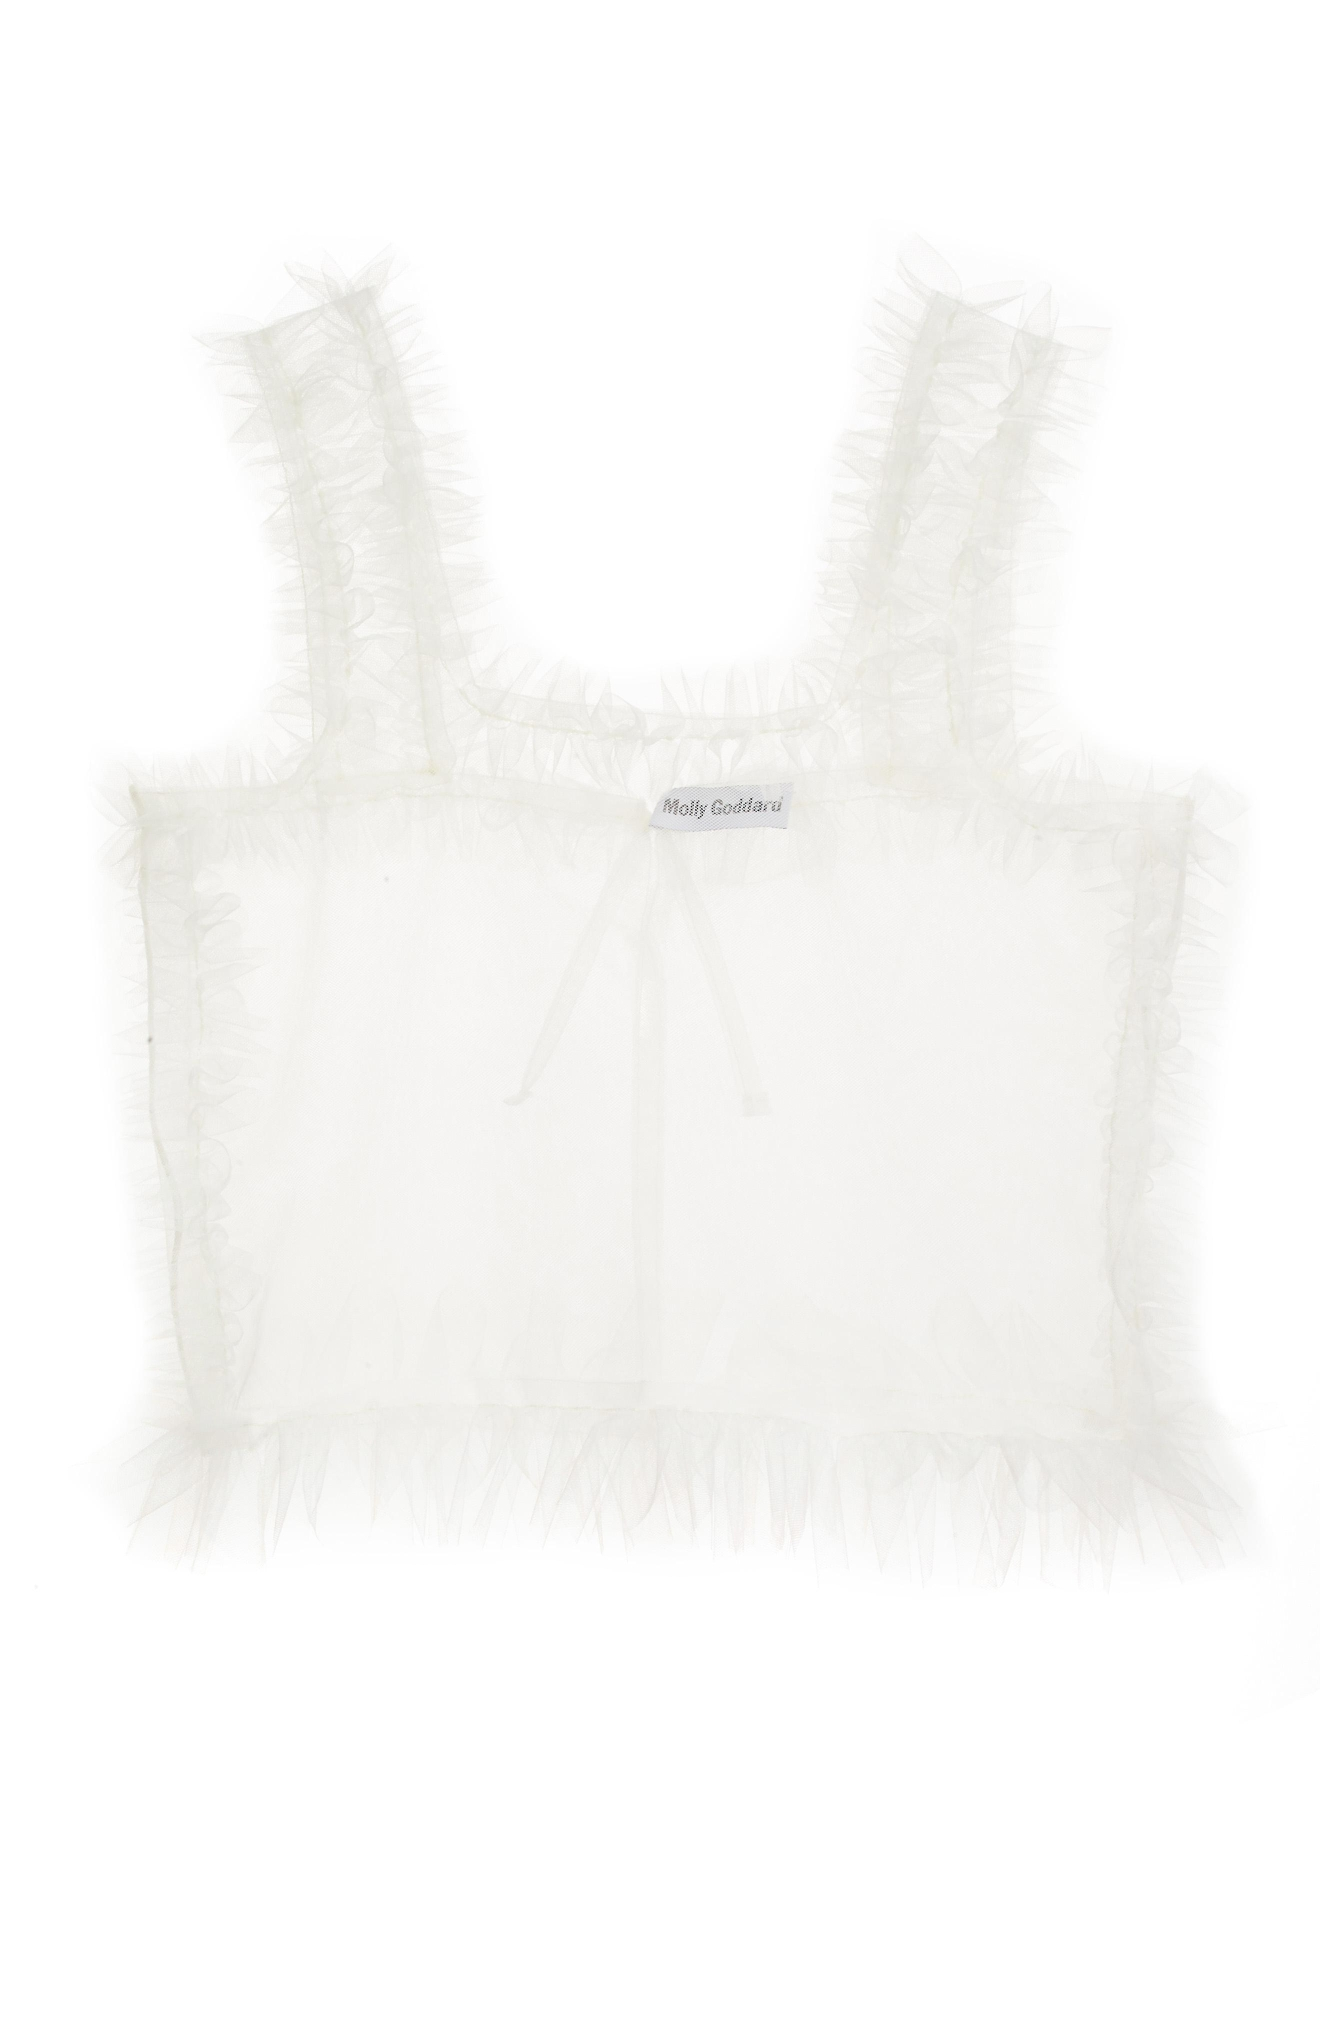 Molly Goddard Frill Top - $375. Get it at nordstrom.com/space. (Image: Nordstrom)